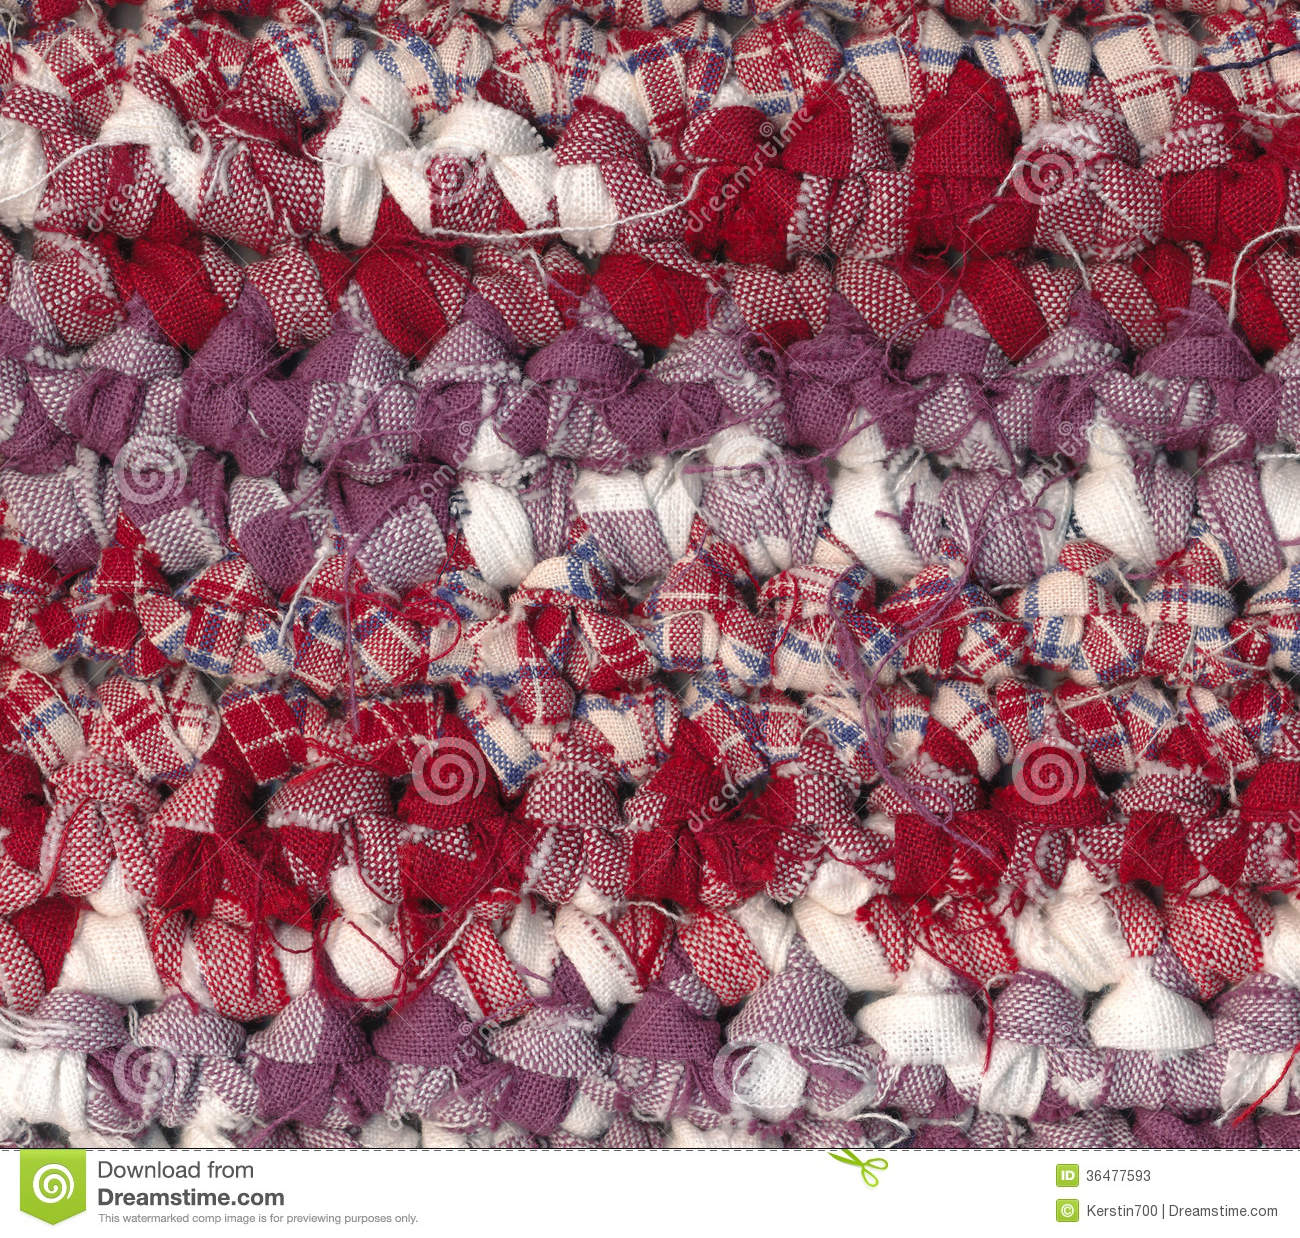 Xl Rag Rug: Crochet Rag Rug In Red, White And Purple Shades Stock